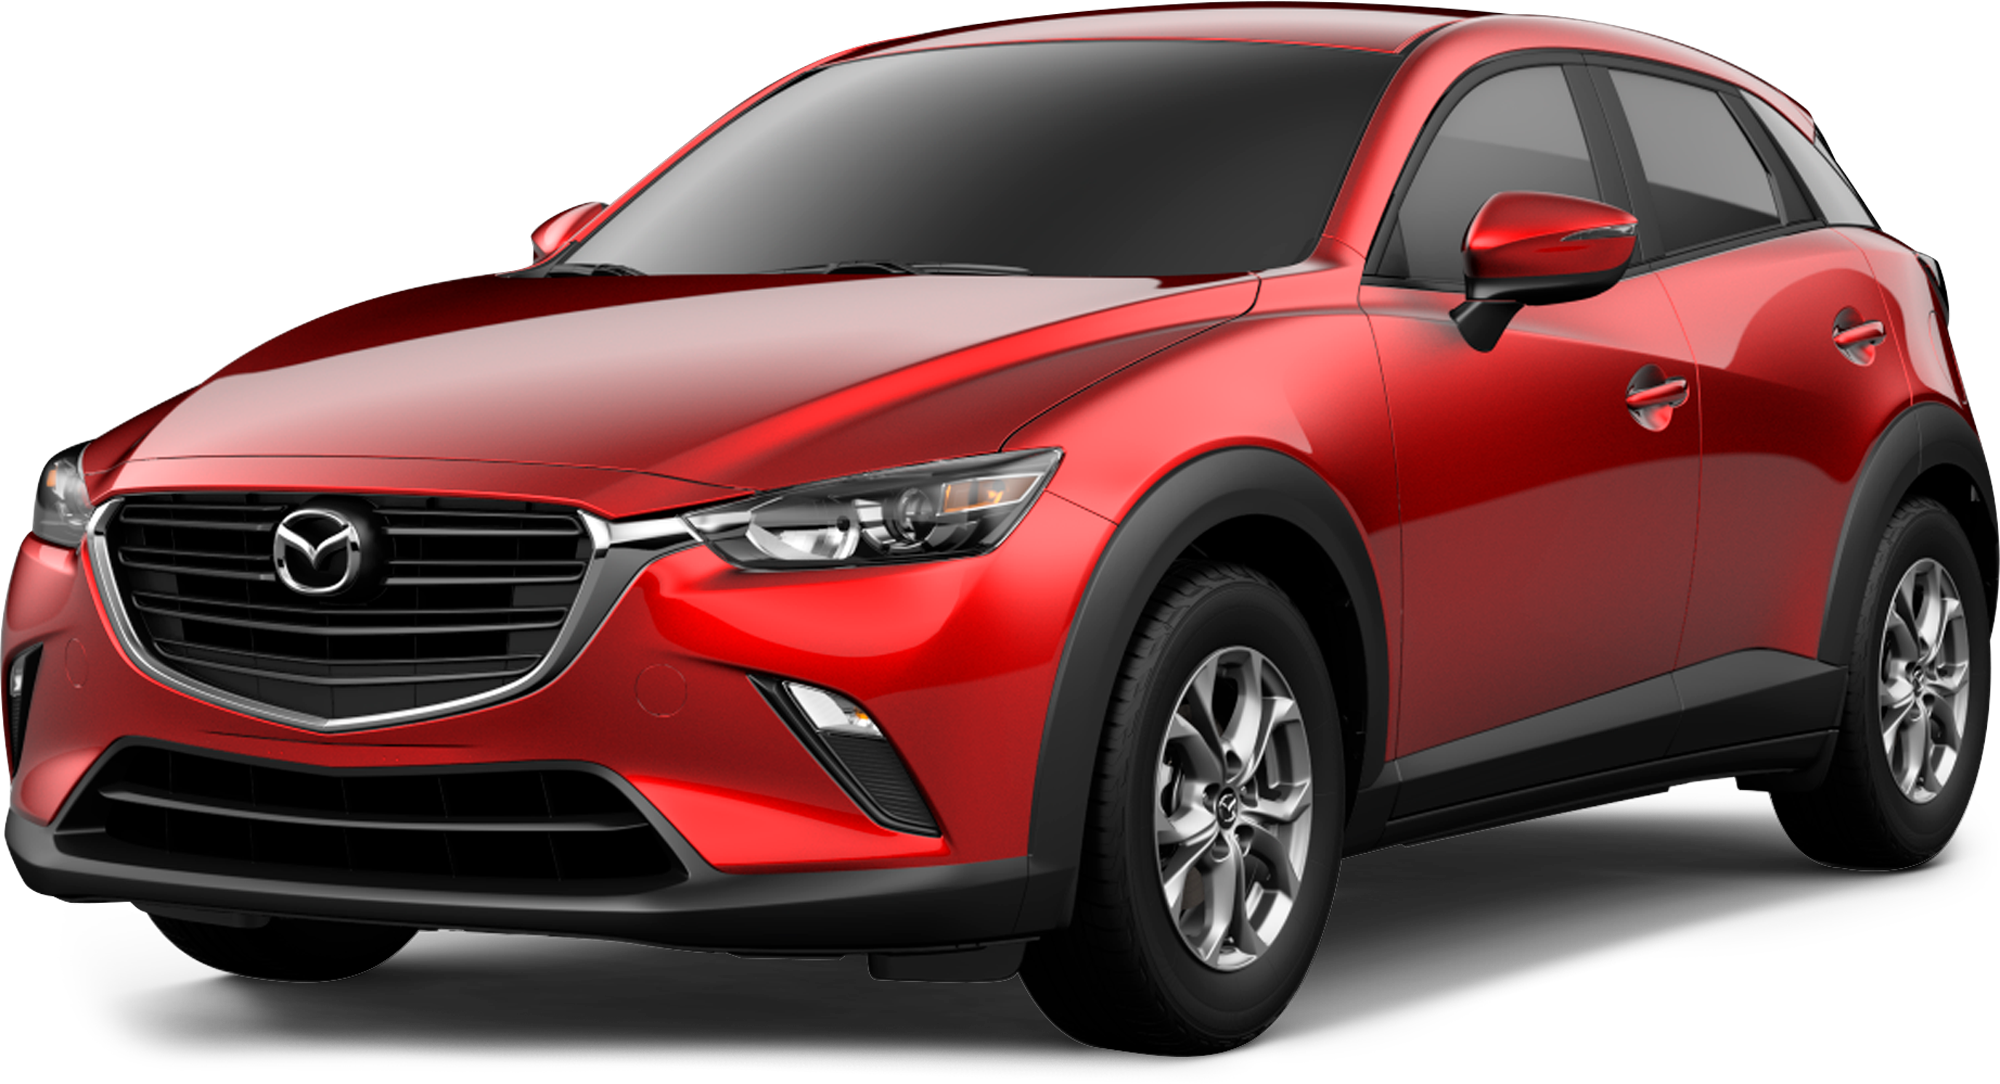 2021 mazda cx-3 incentives, specials & offers in woodbridge on